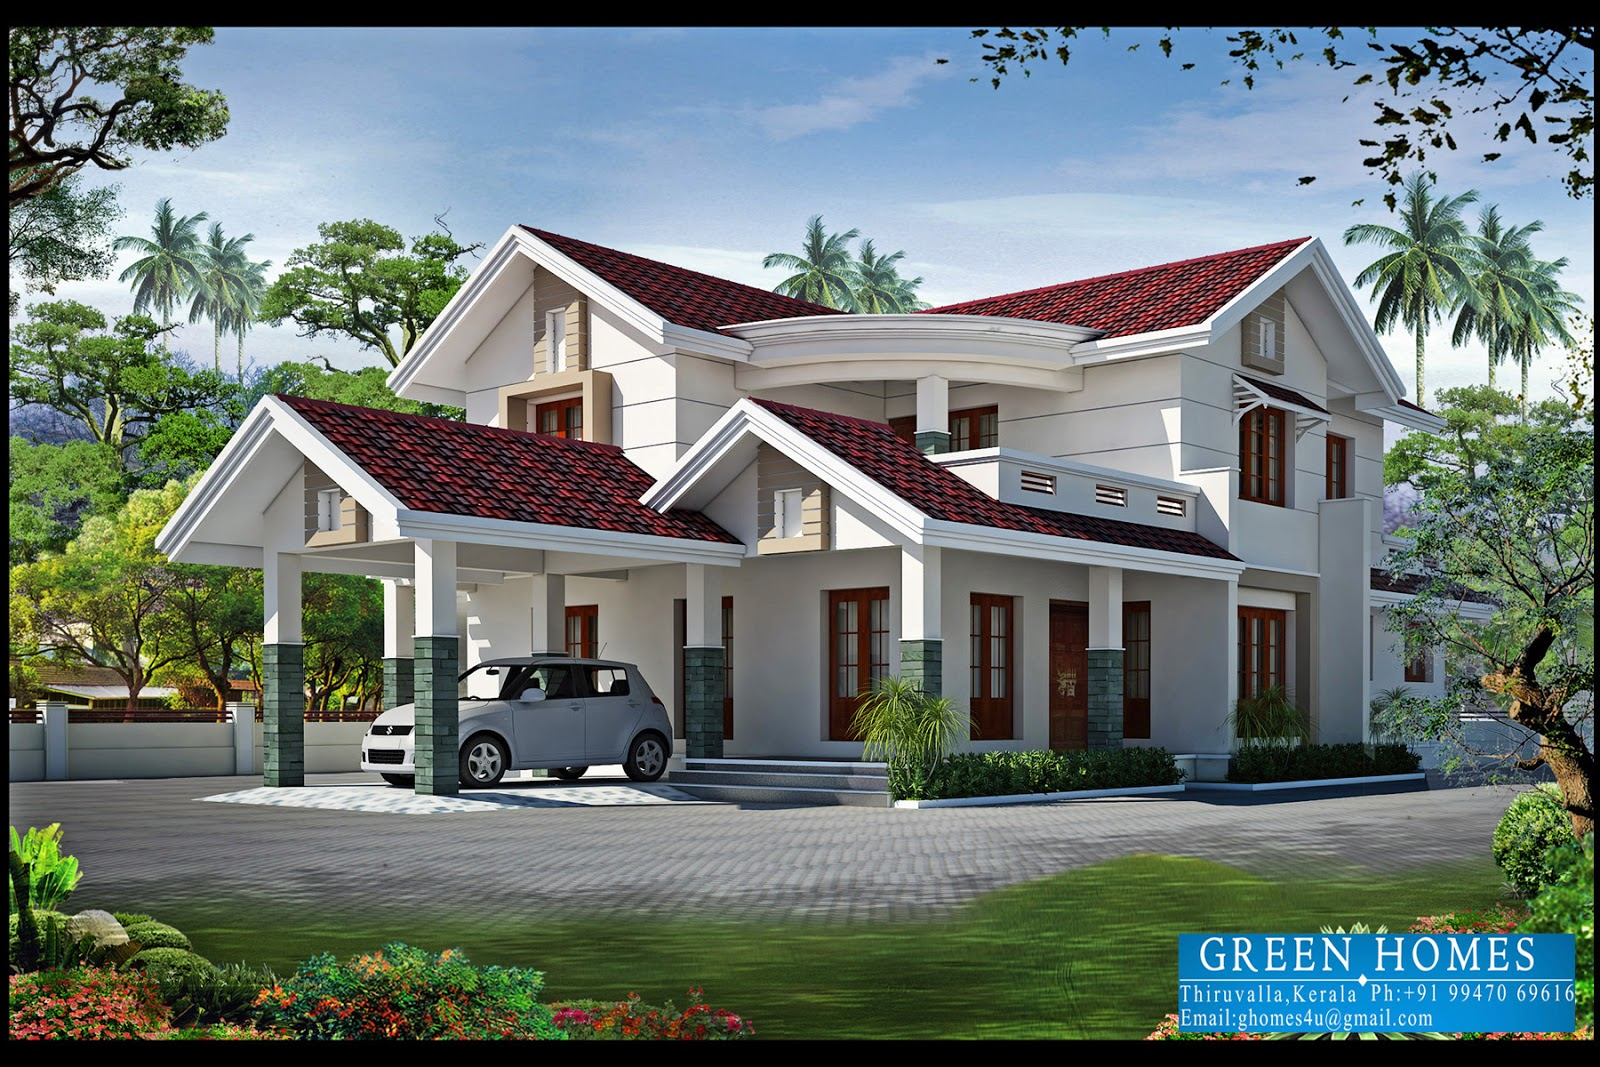 Green homes 4bhk kerala home design 2550 for Latest house designs in kerala